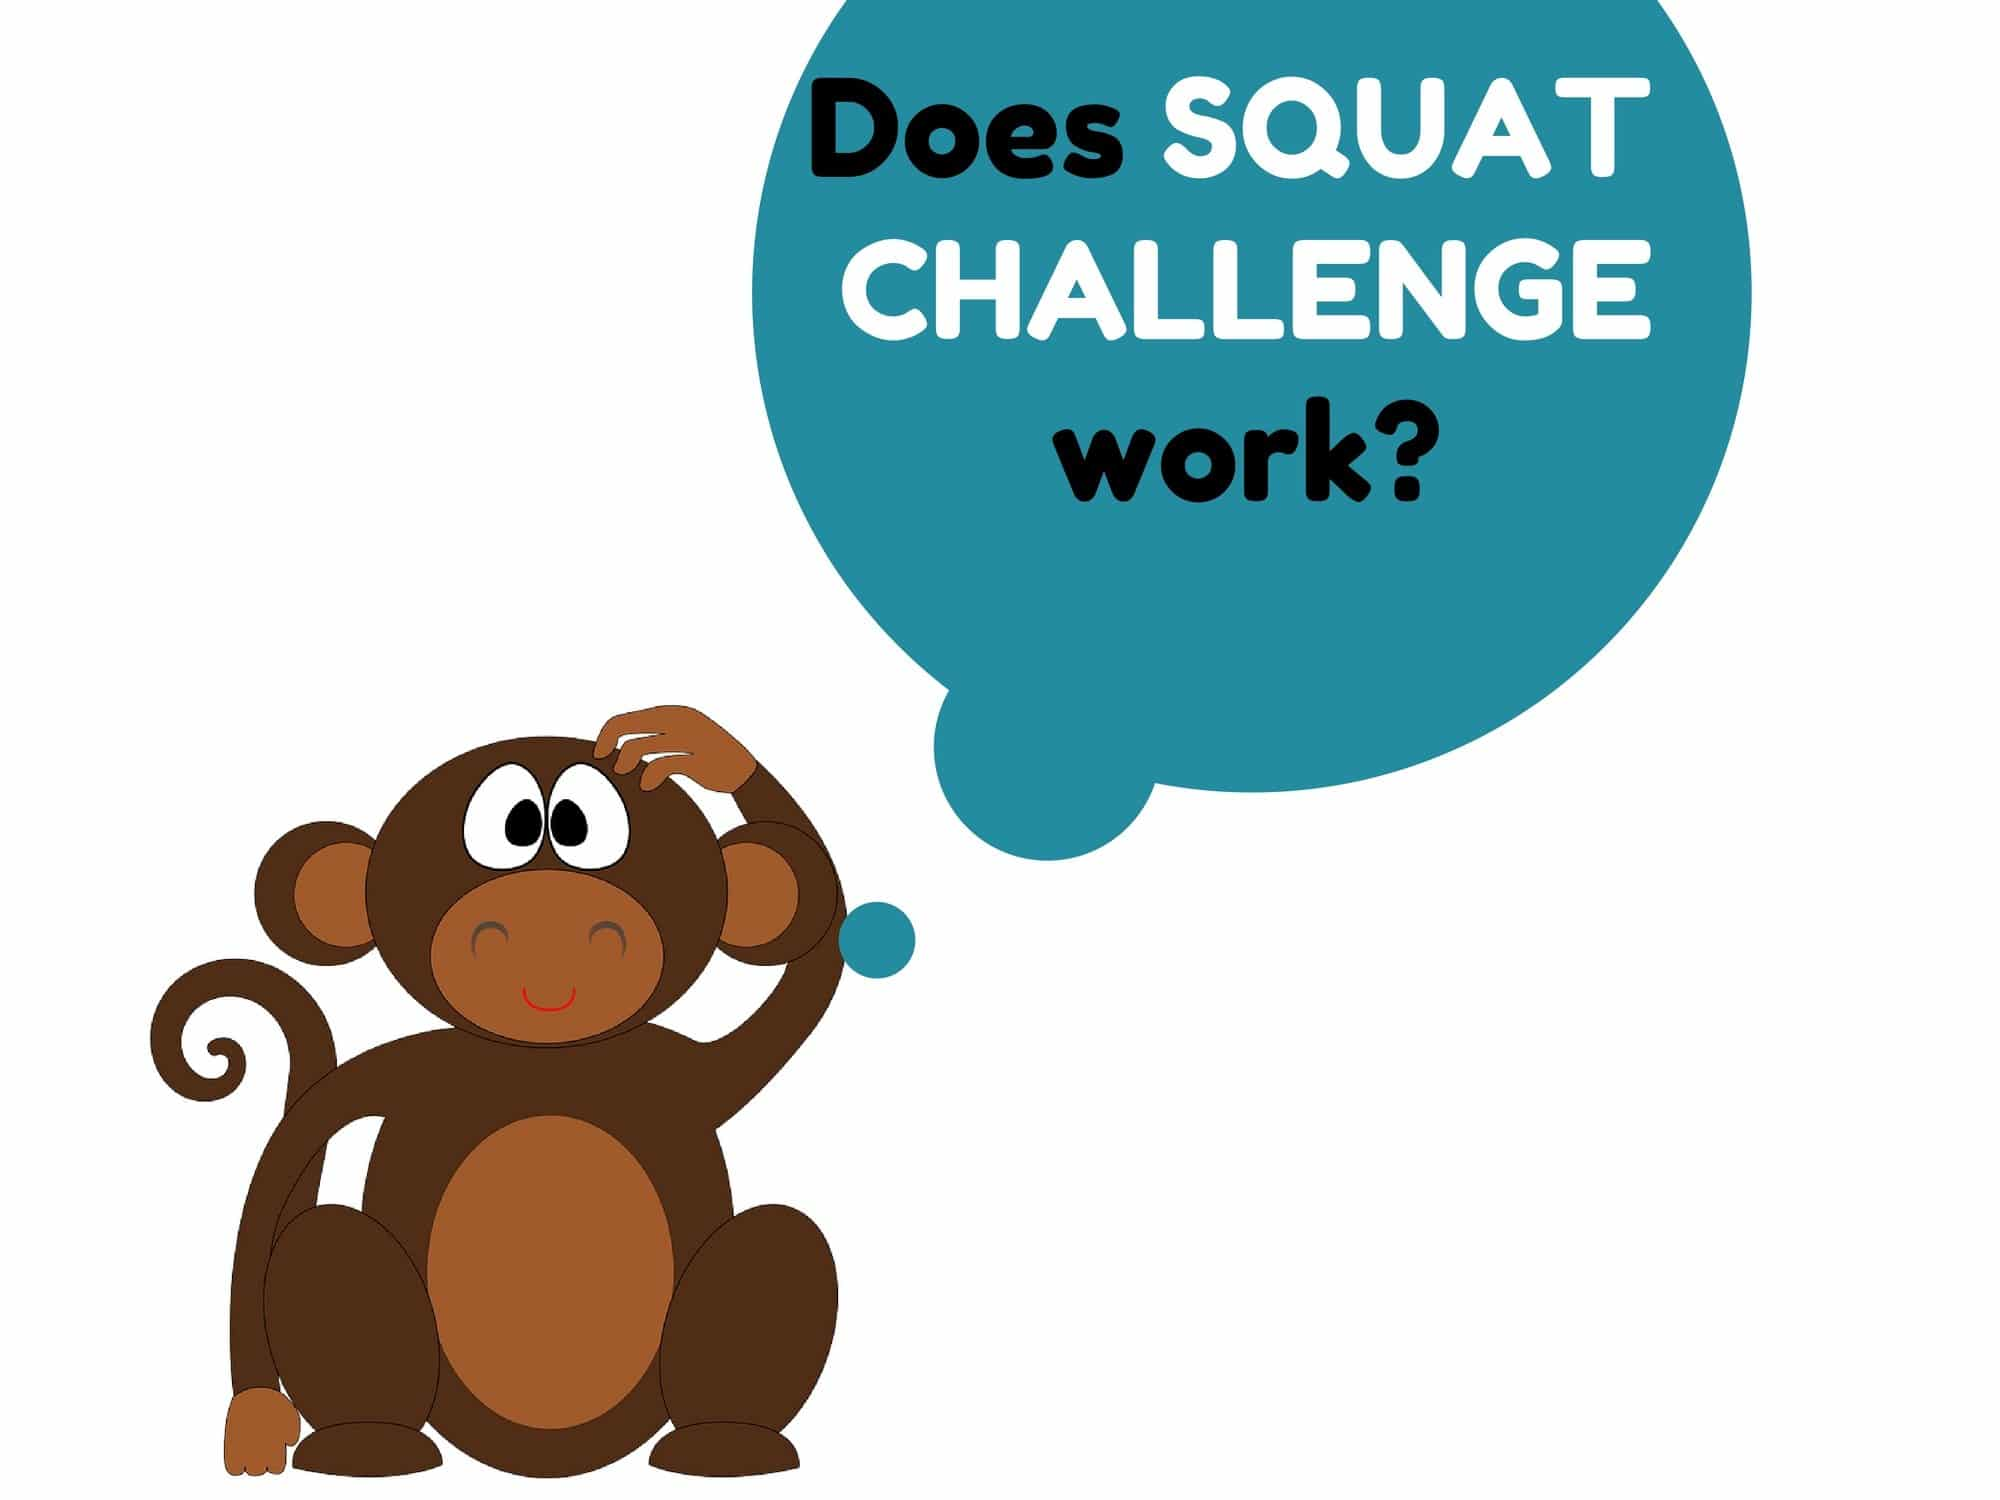 Does the squat challenge work